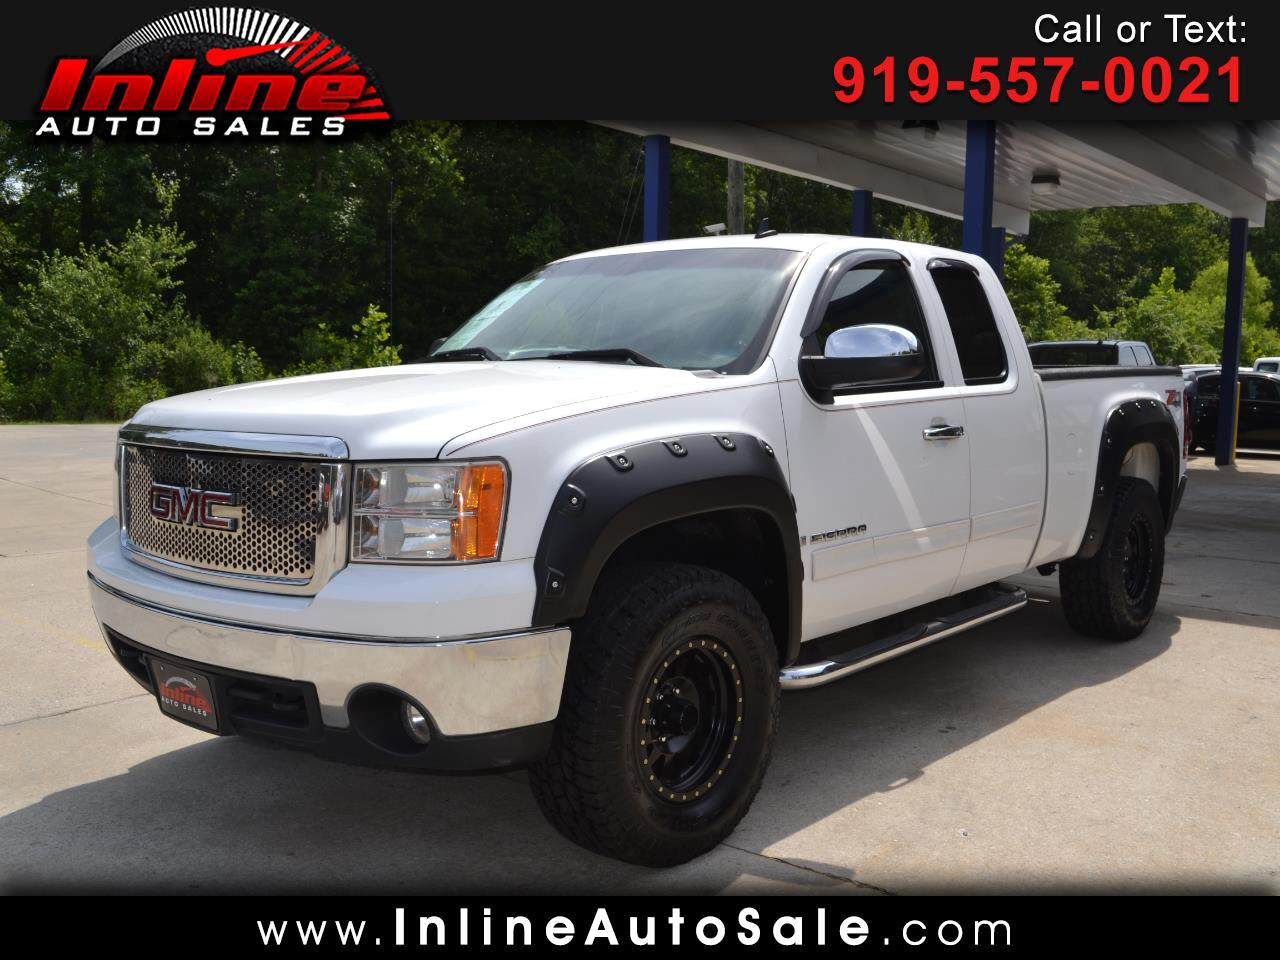 2008 GMC Sierra 1500 SLE Ext. Cab Short Bed 4WD